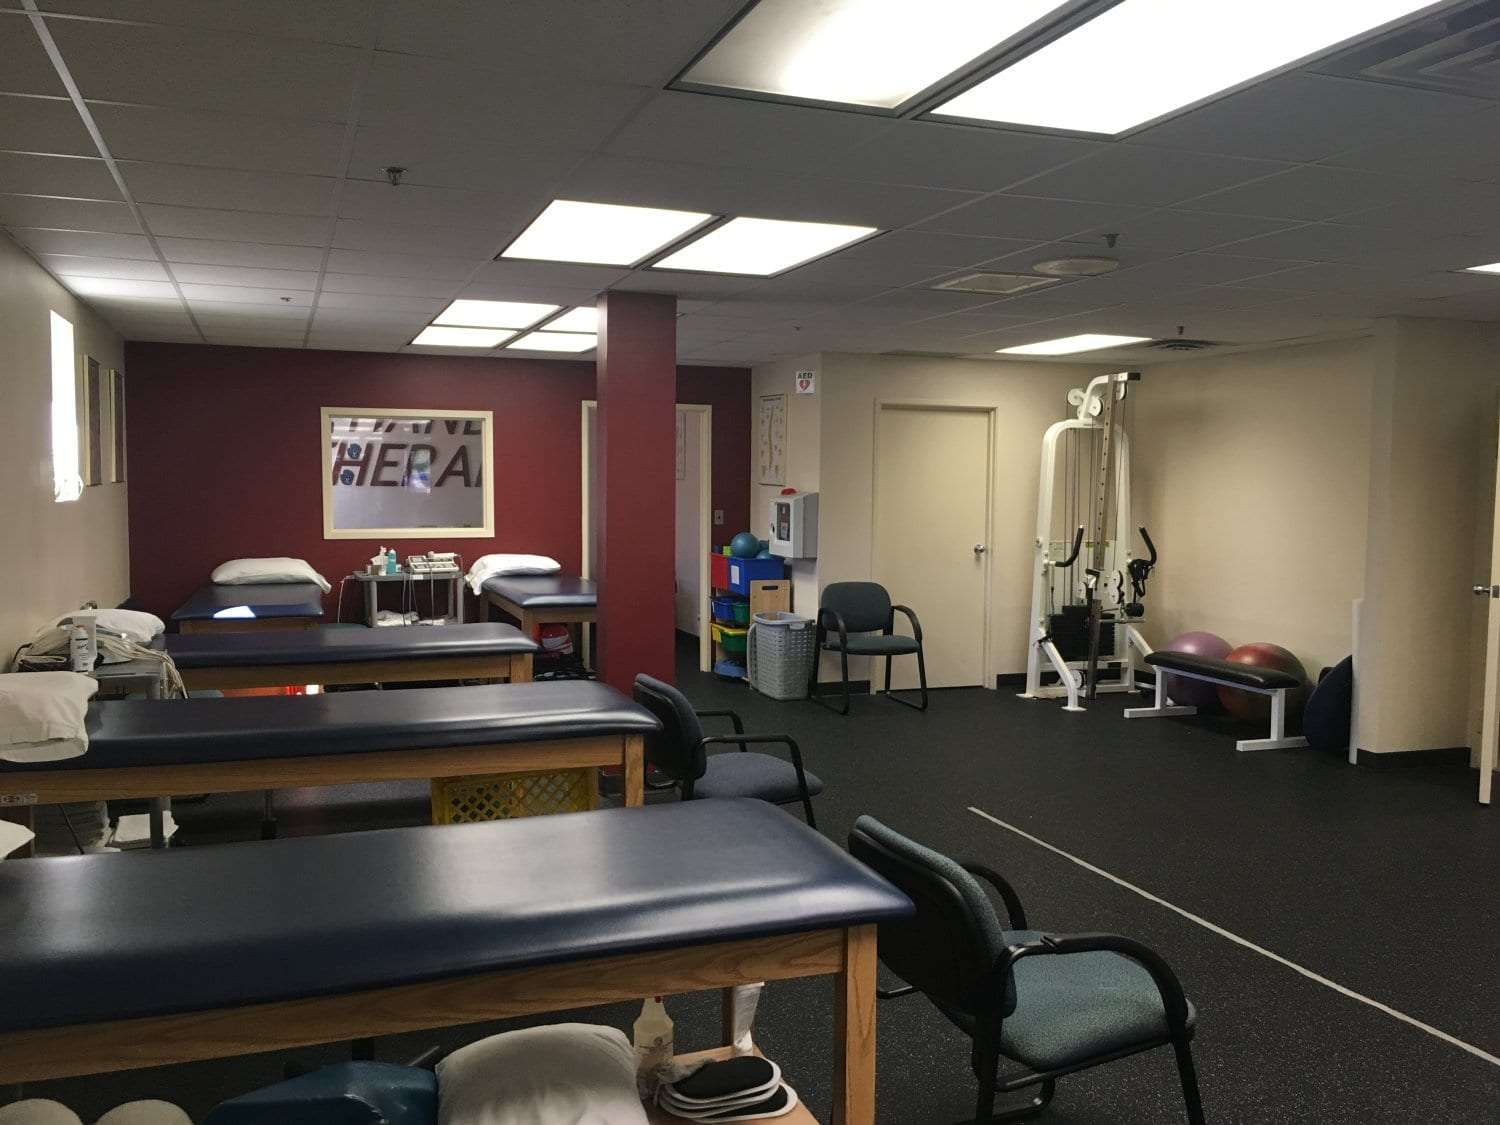 Here is an image of the interior of our physical therapy clinic in Waldwick, New Jersey.